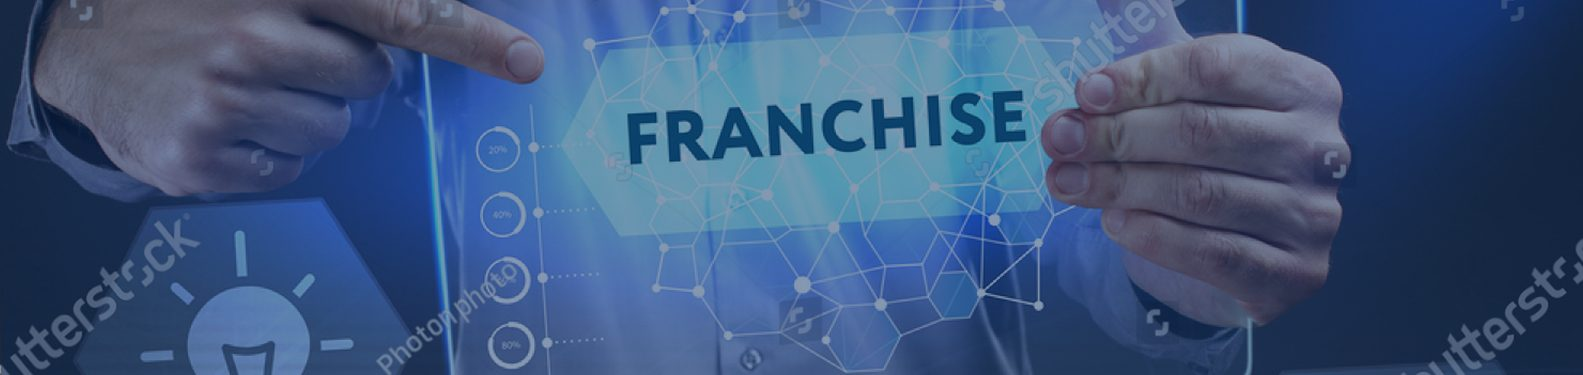 Franchise Development Services